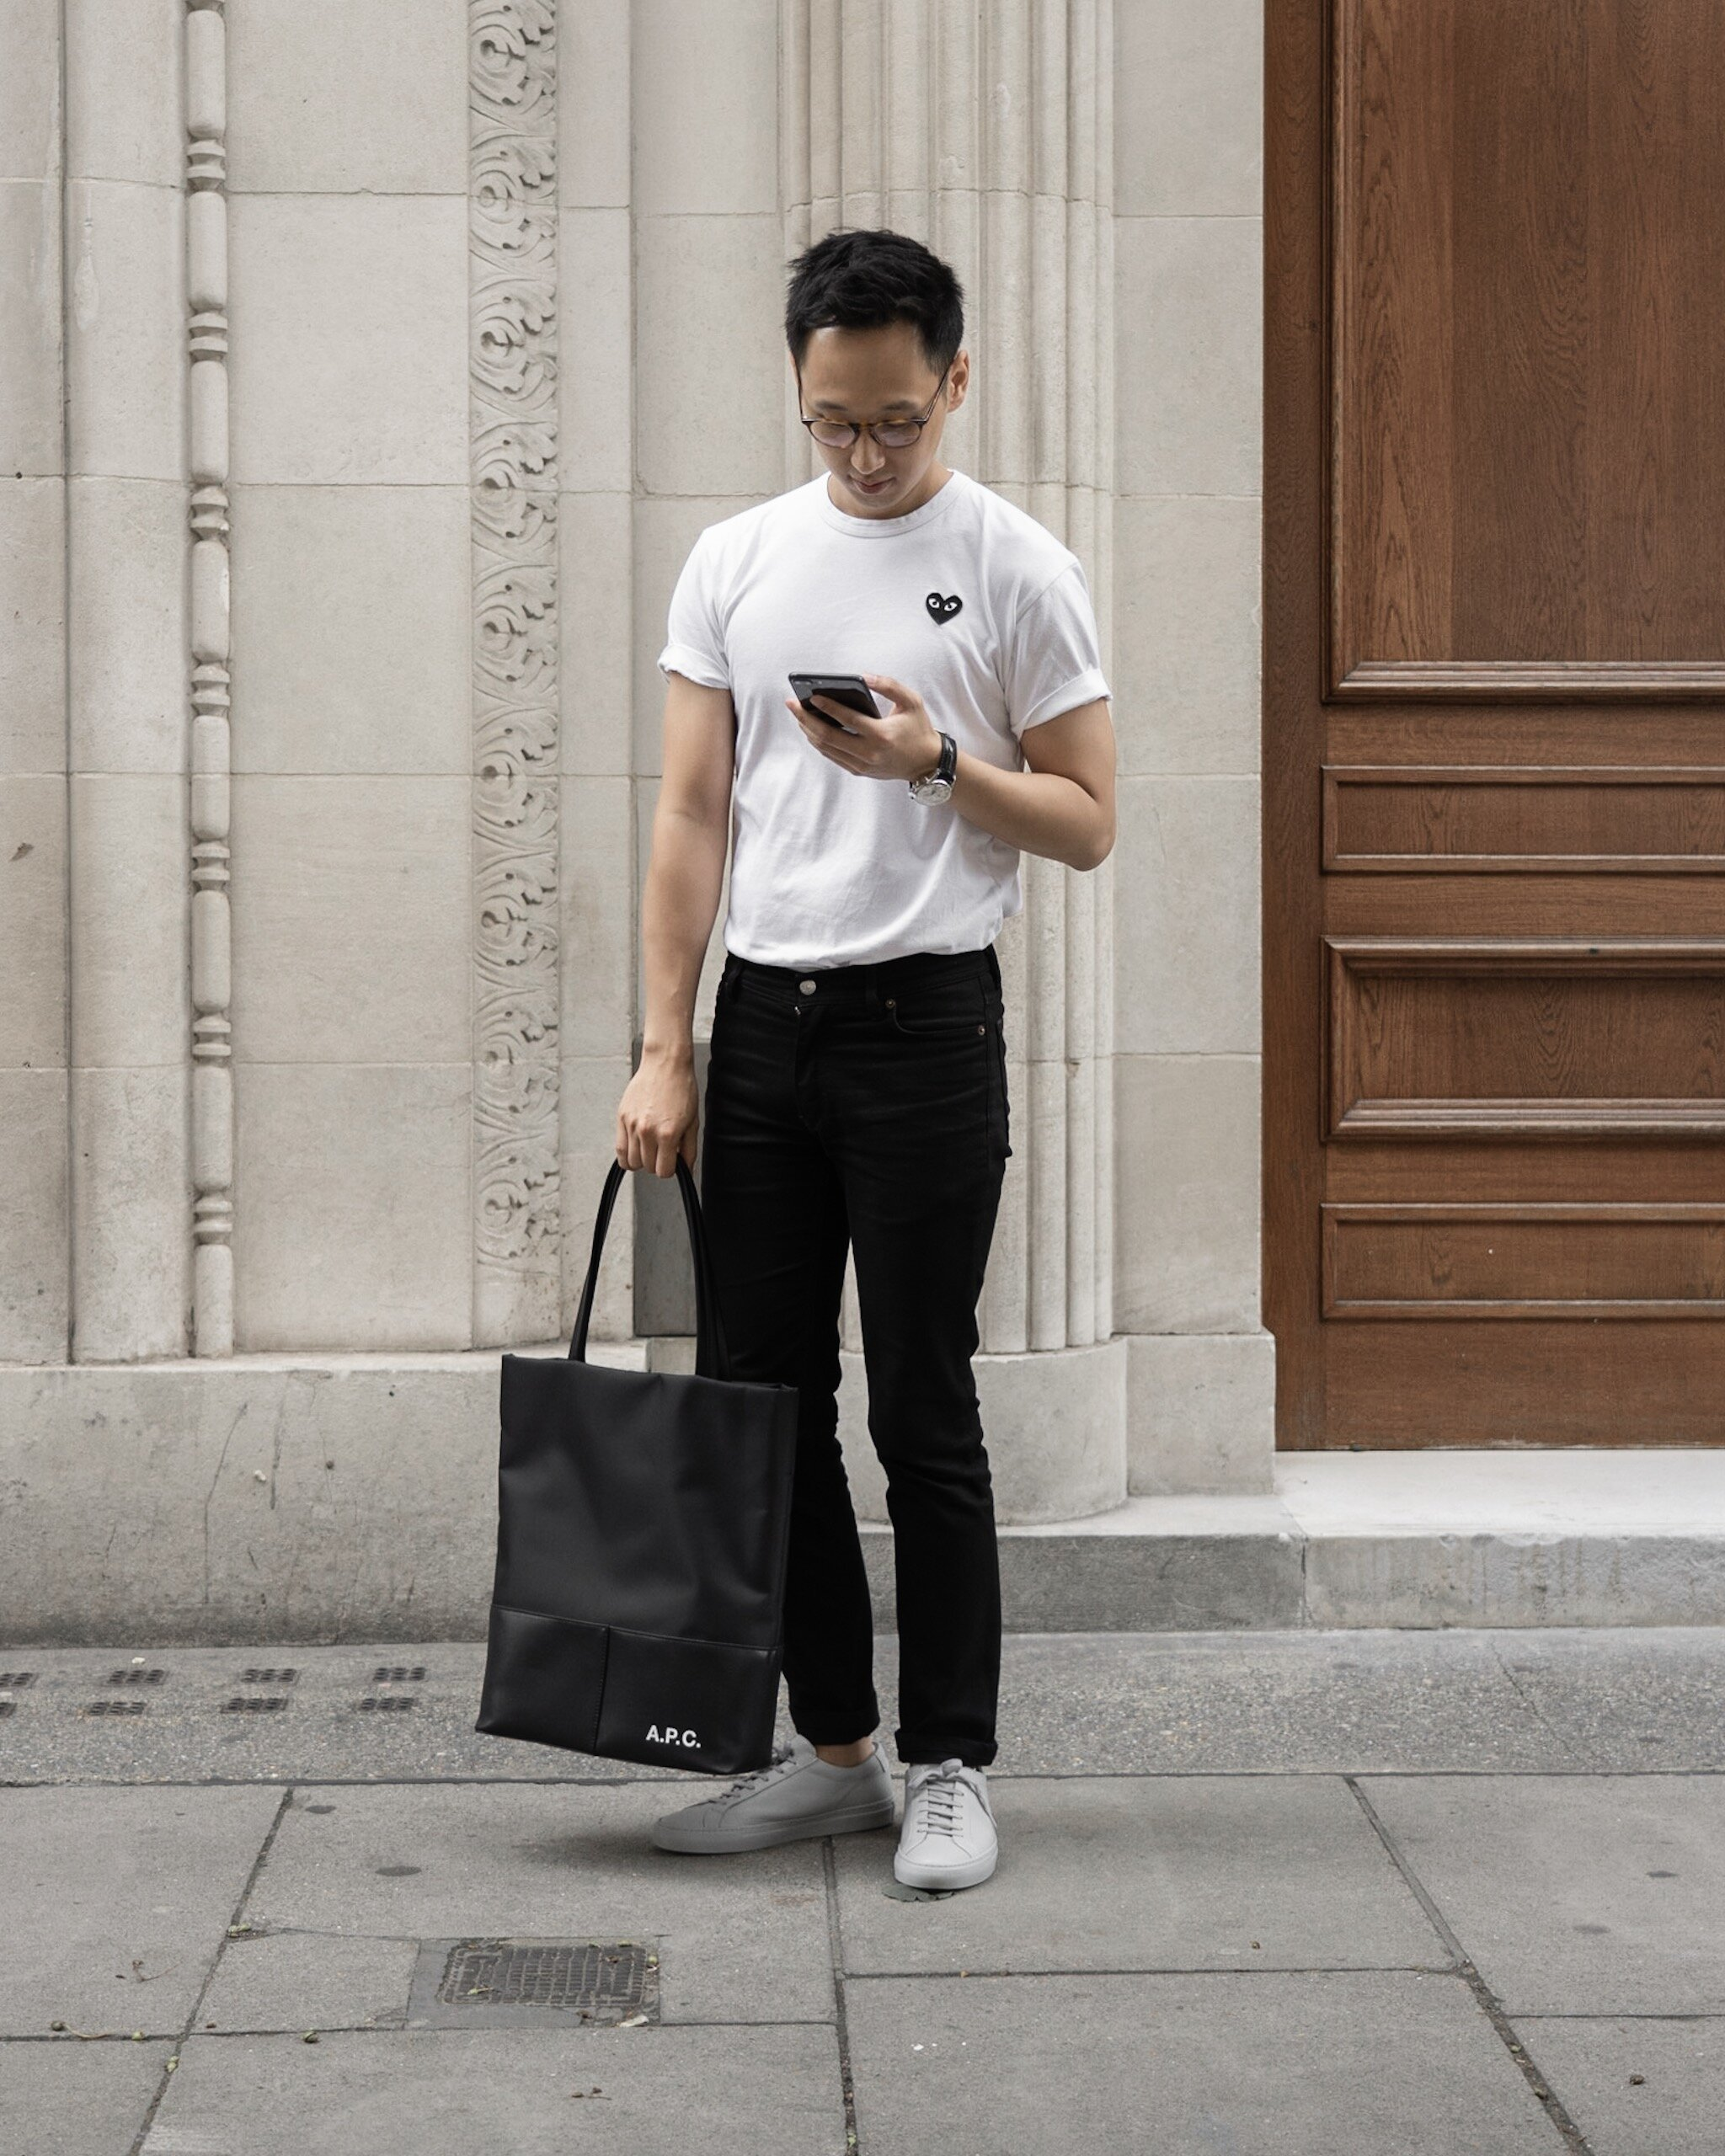 Weekday Uniform - with A.P.C.